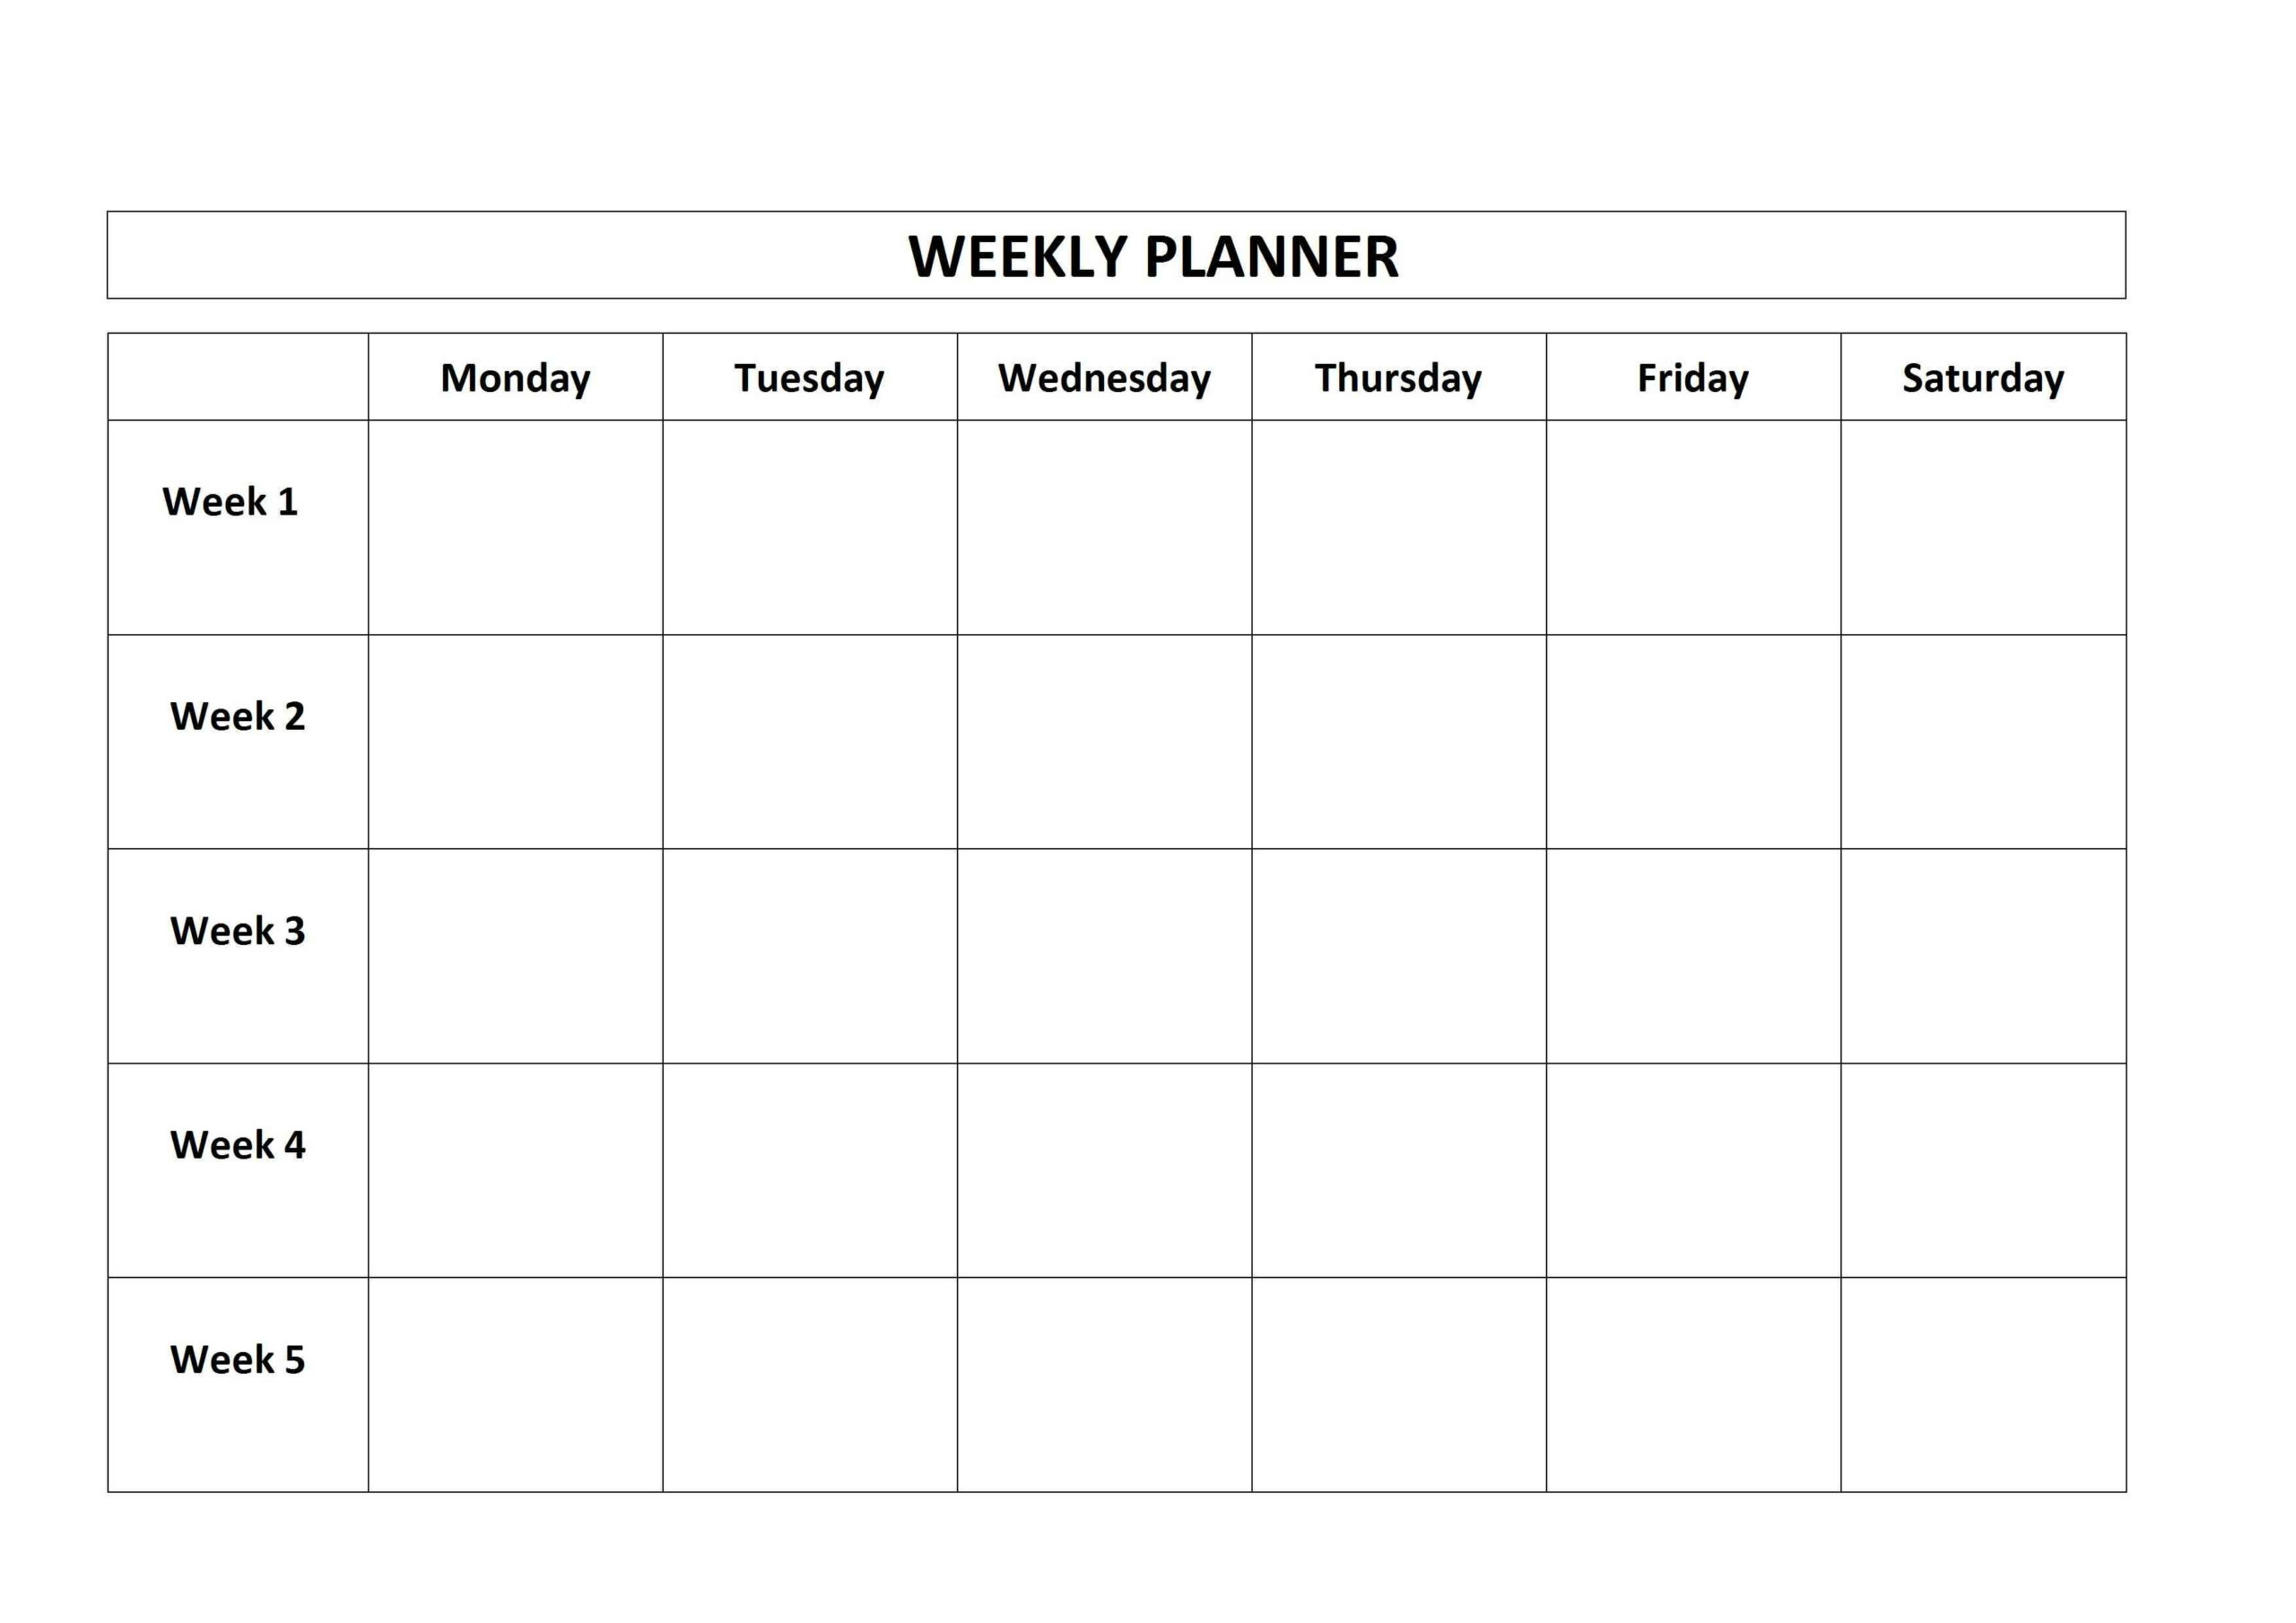 Monday To Friday Planner Template | Calendar For Planning intended for Monday Thru Friday Schedule Template